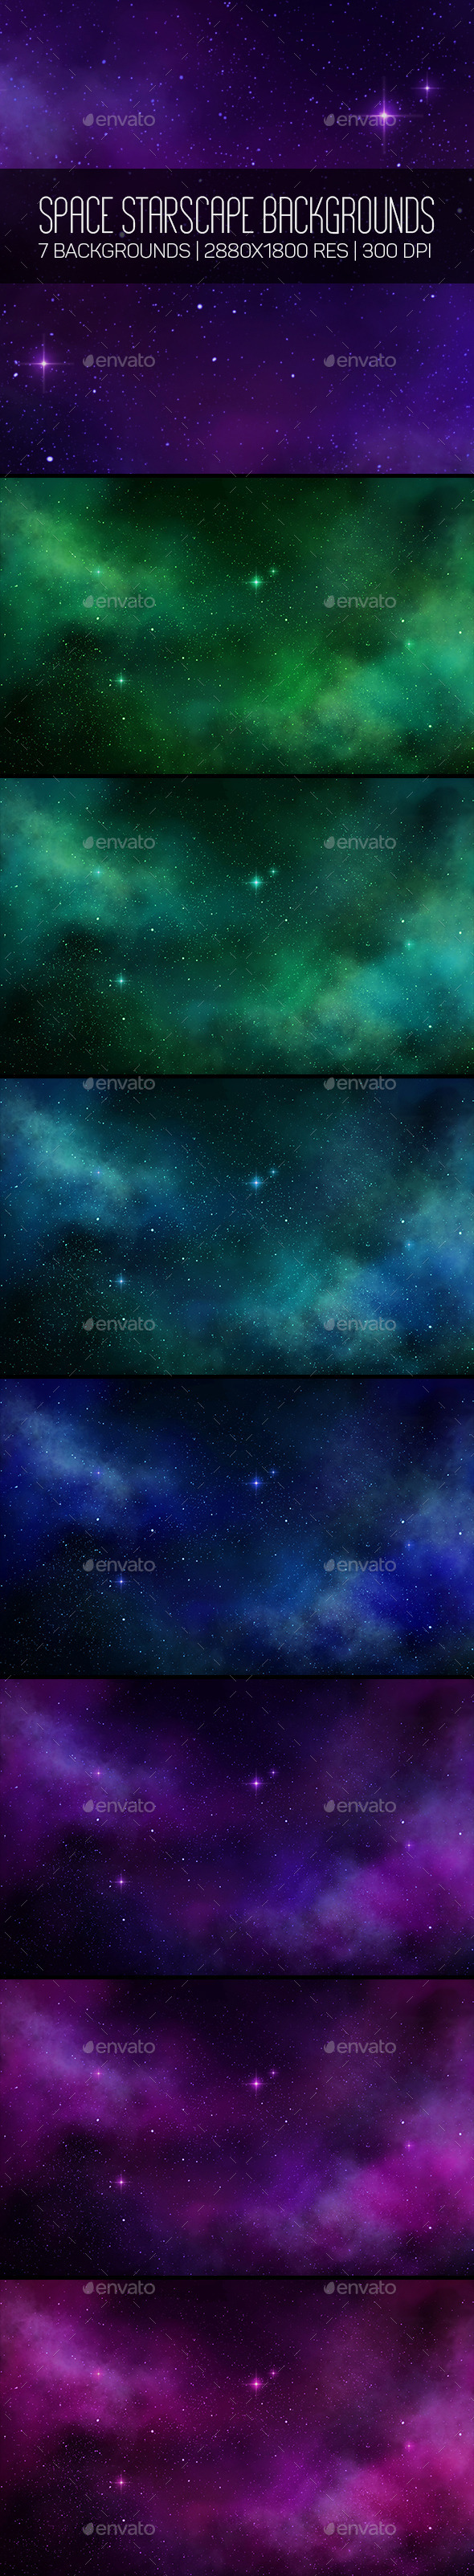 GraphicRiver Space Starscape Backgroungs 10368491